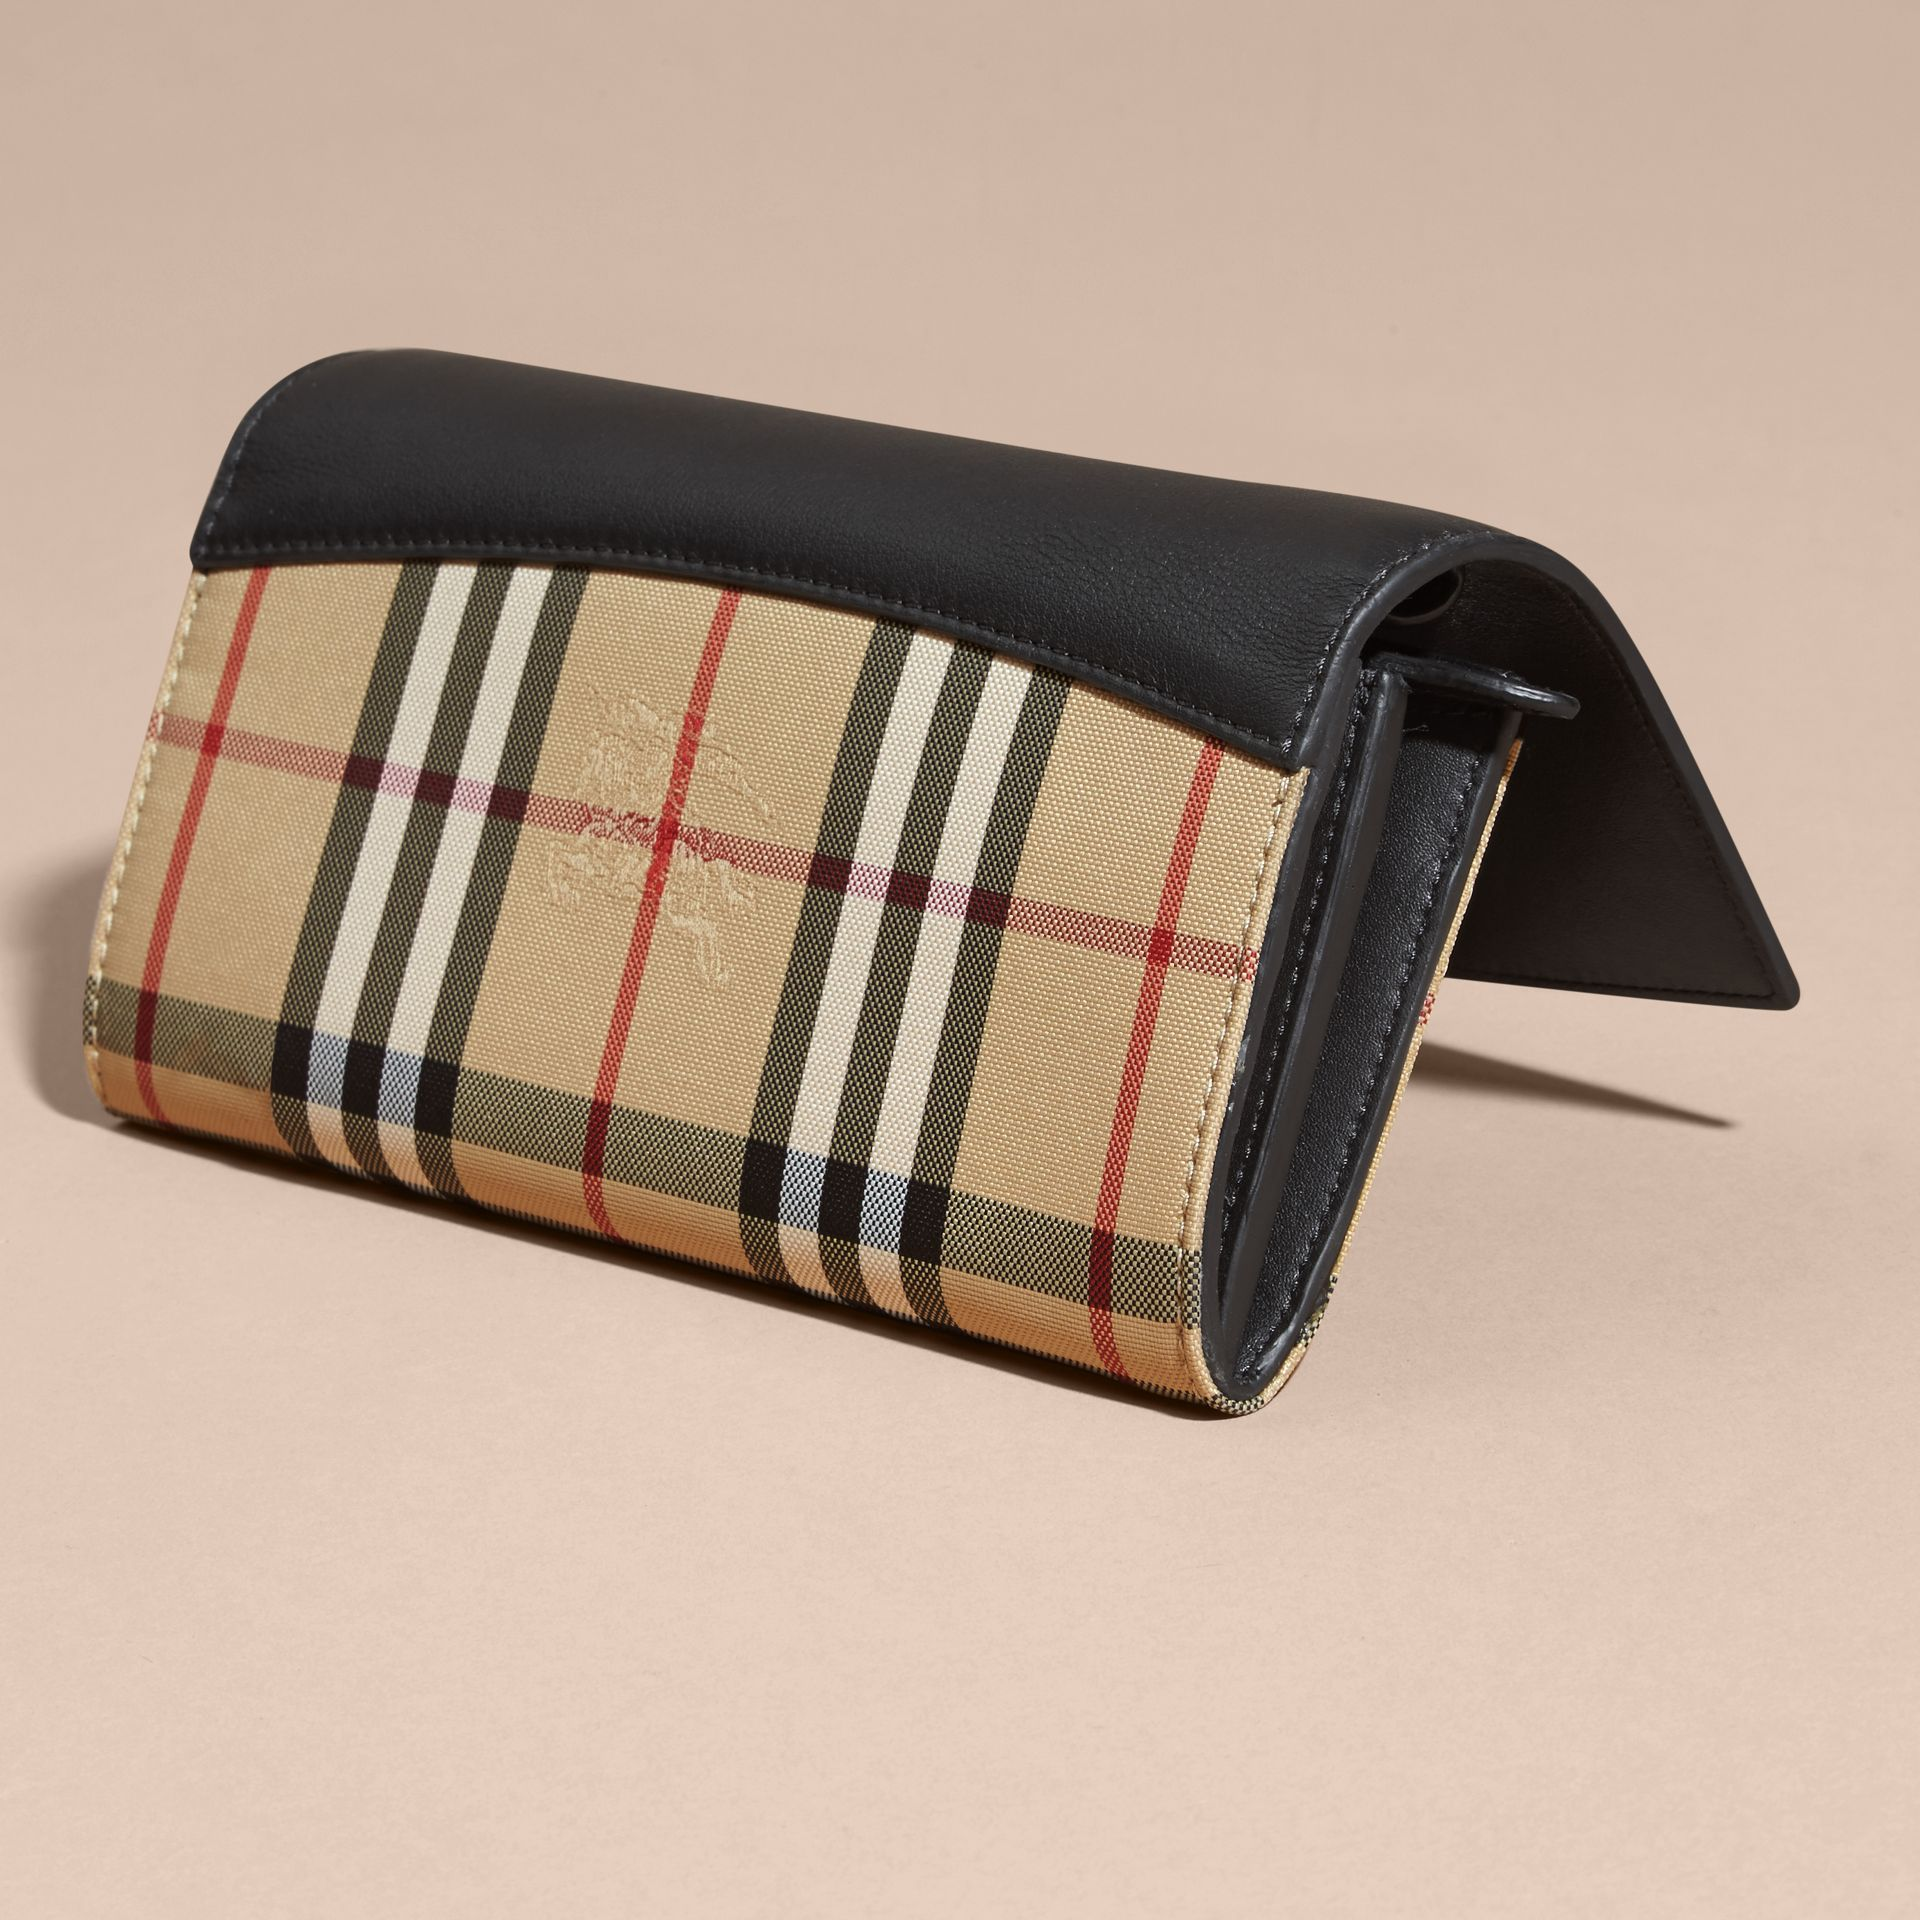 Horseferry Check and Leather Wallet with Chain in Black - Women | Burberry - gallery image 5